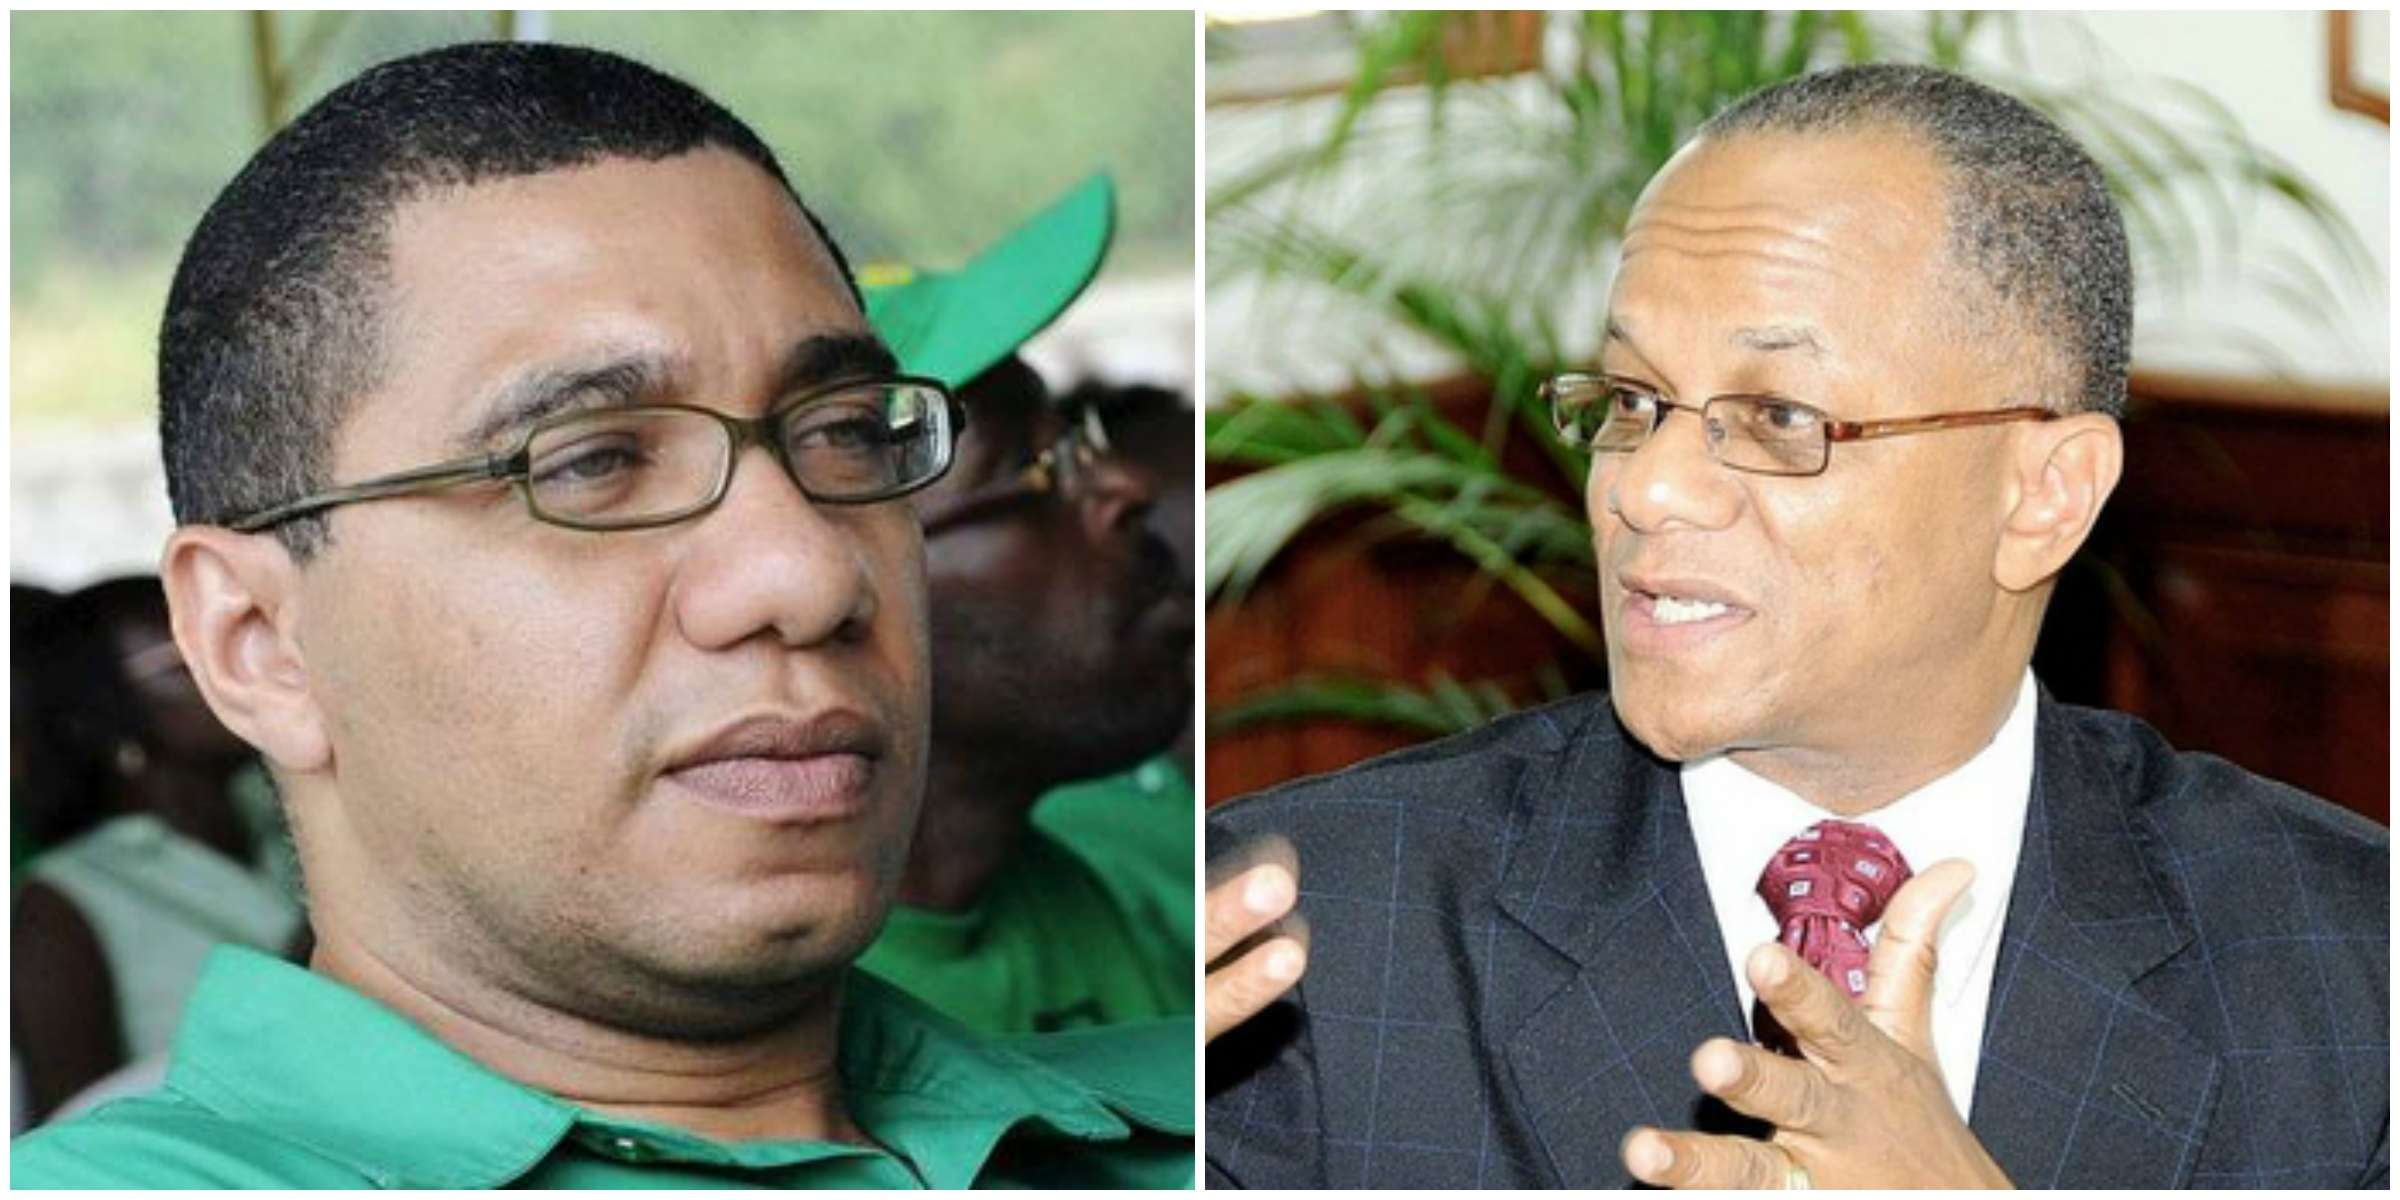 COURT: Holness Not Obliged to Pay Williams' Legal Bill